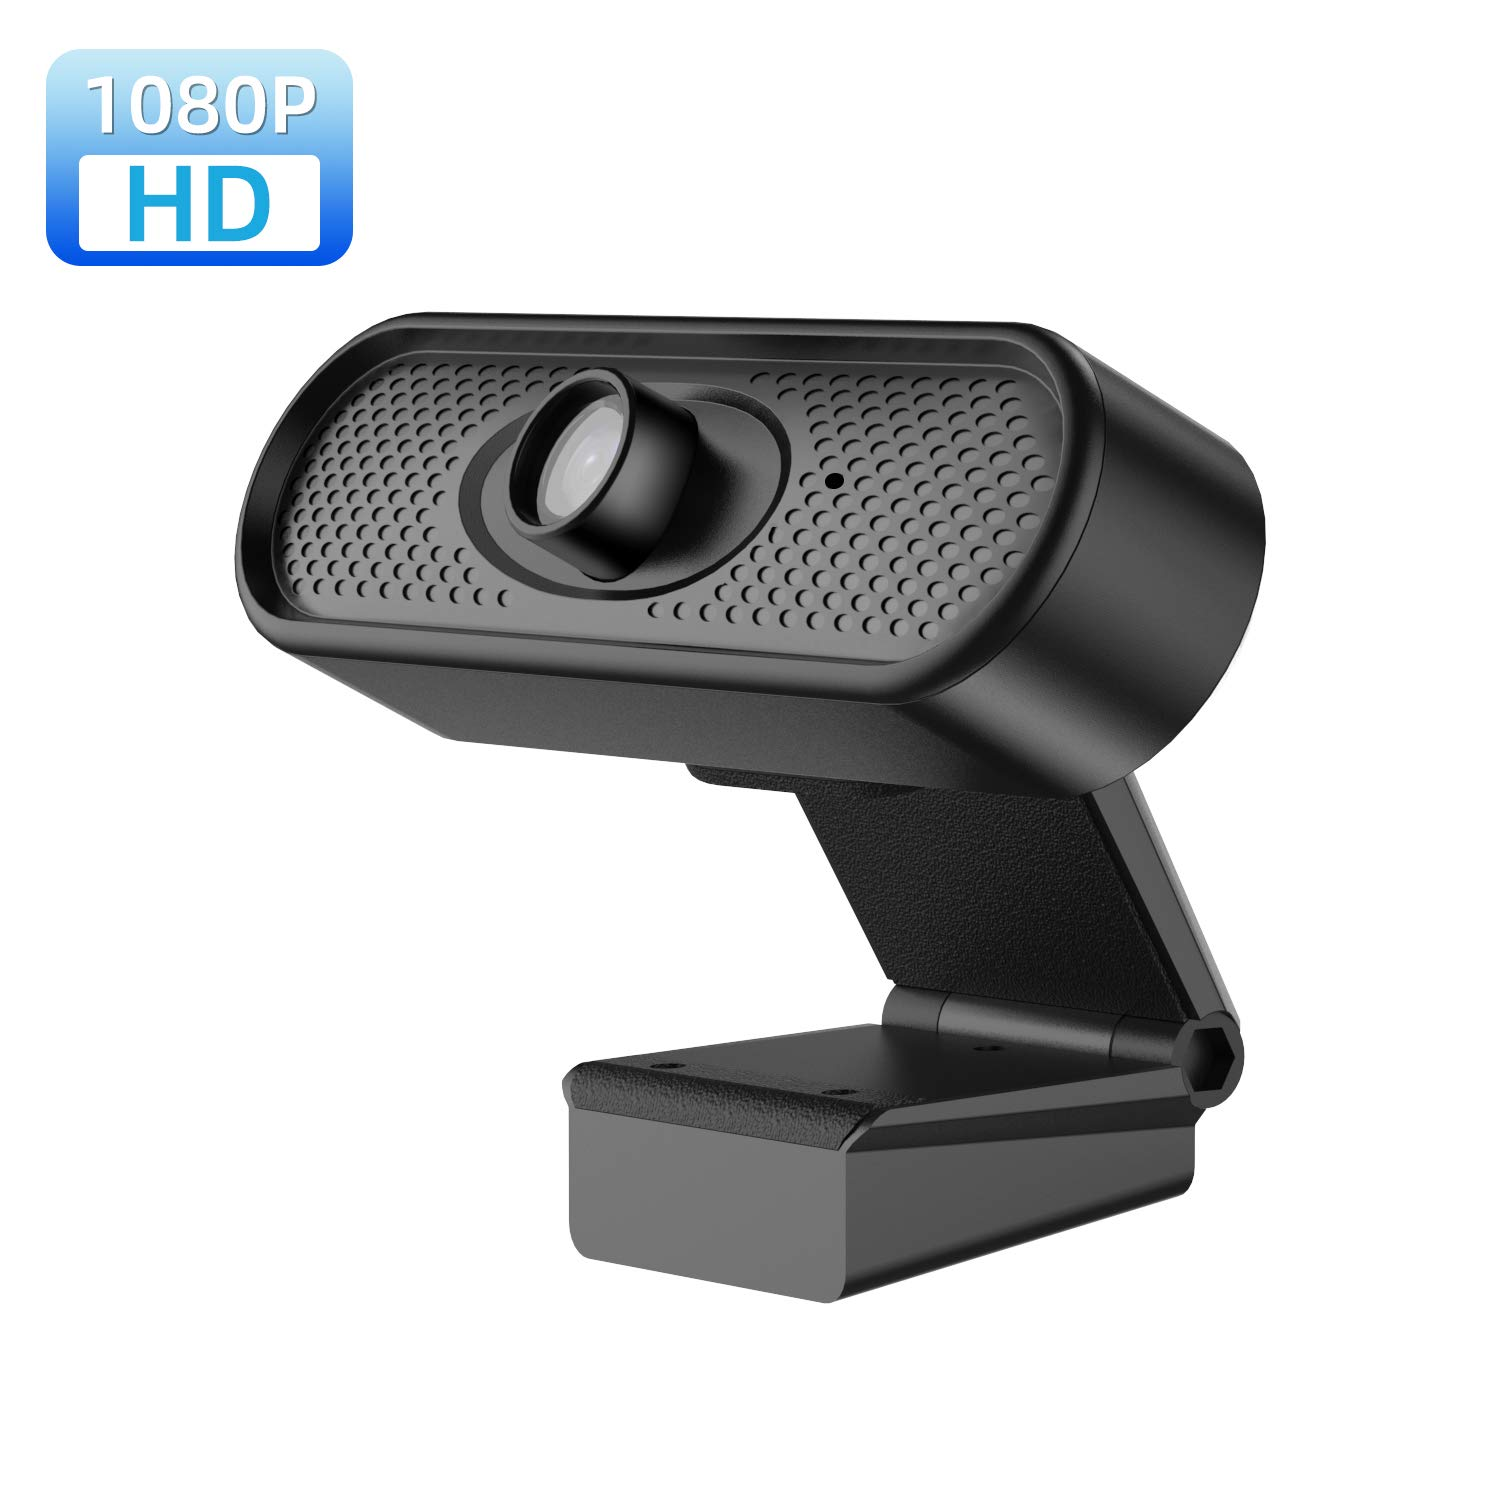 Webcam with Microphone, 1080p HD Computer Camera, USB Computer Camera for Live Streaming Webcam, Plug and Play Video Calling Webcam, Large Sensor Superior Low Light for Conferencing, Gaming